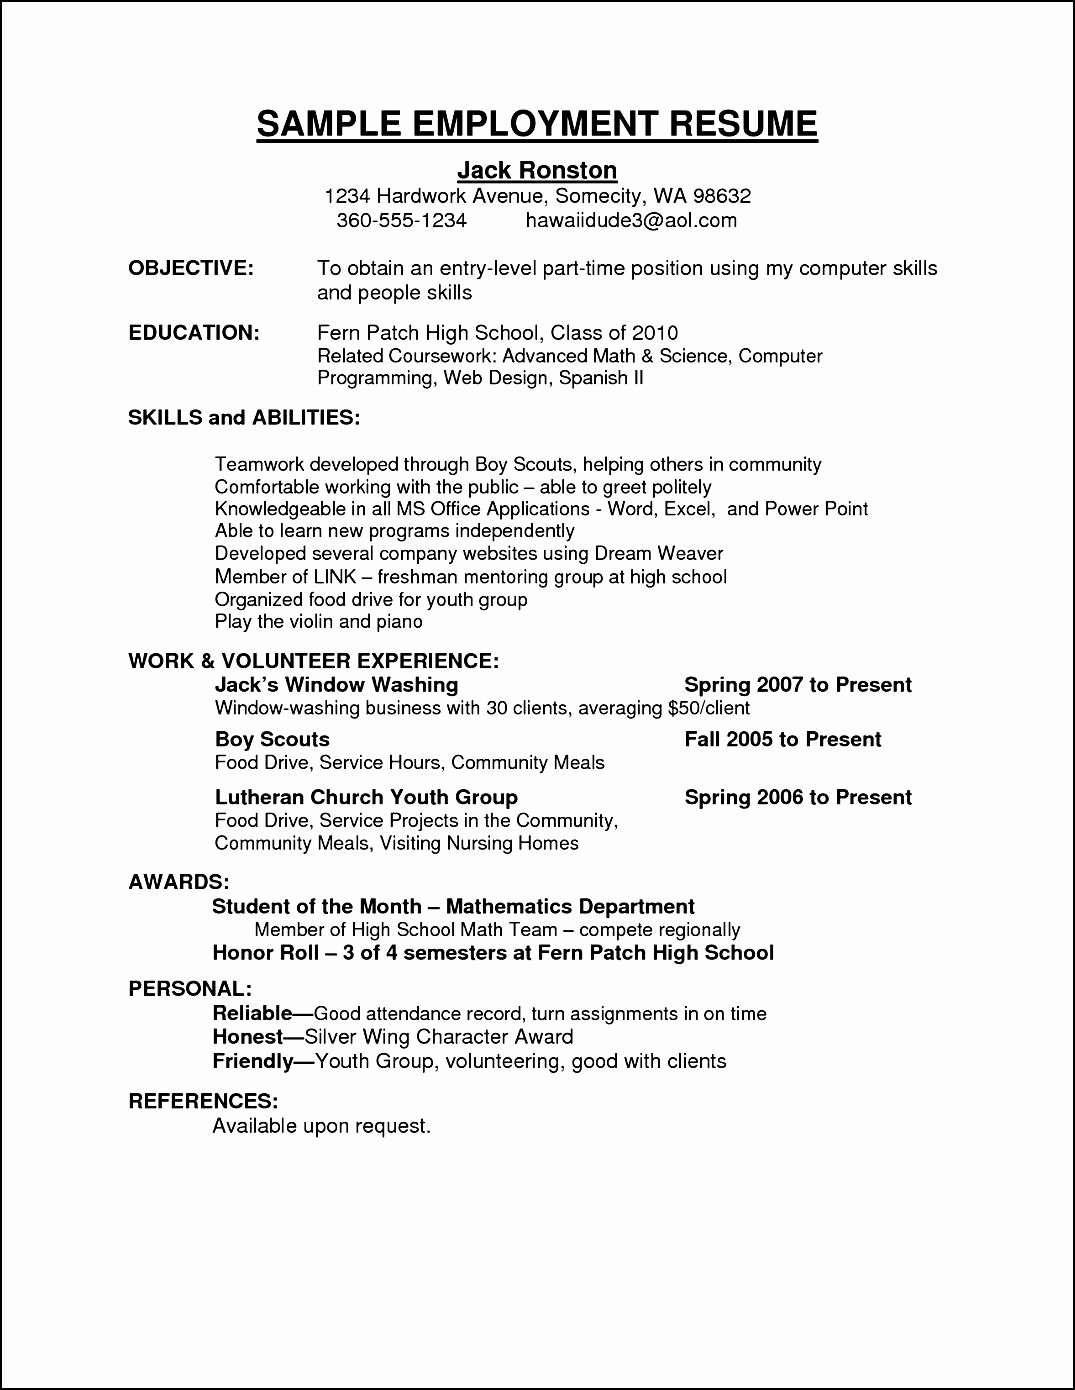 Sample Curriculum Vitae for Employment Free Samples